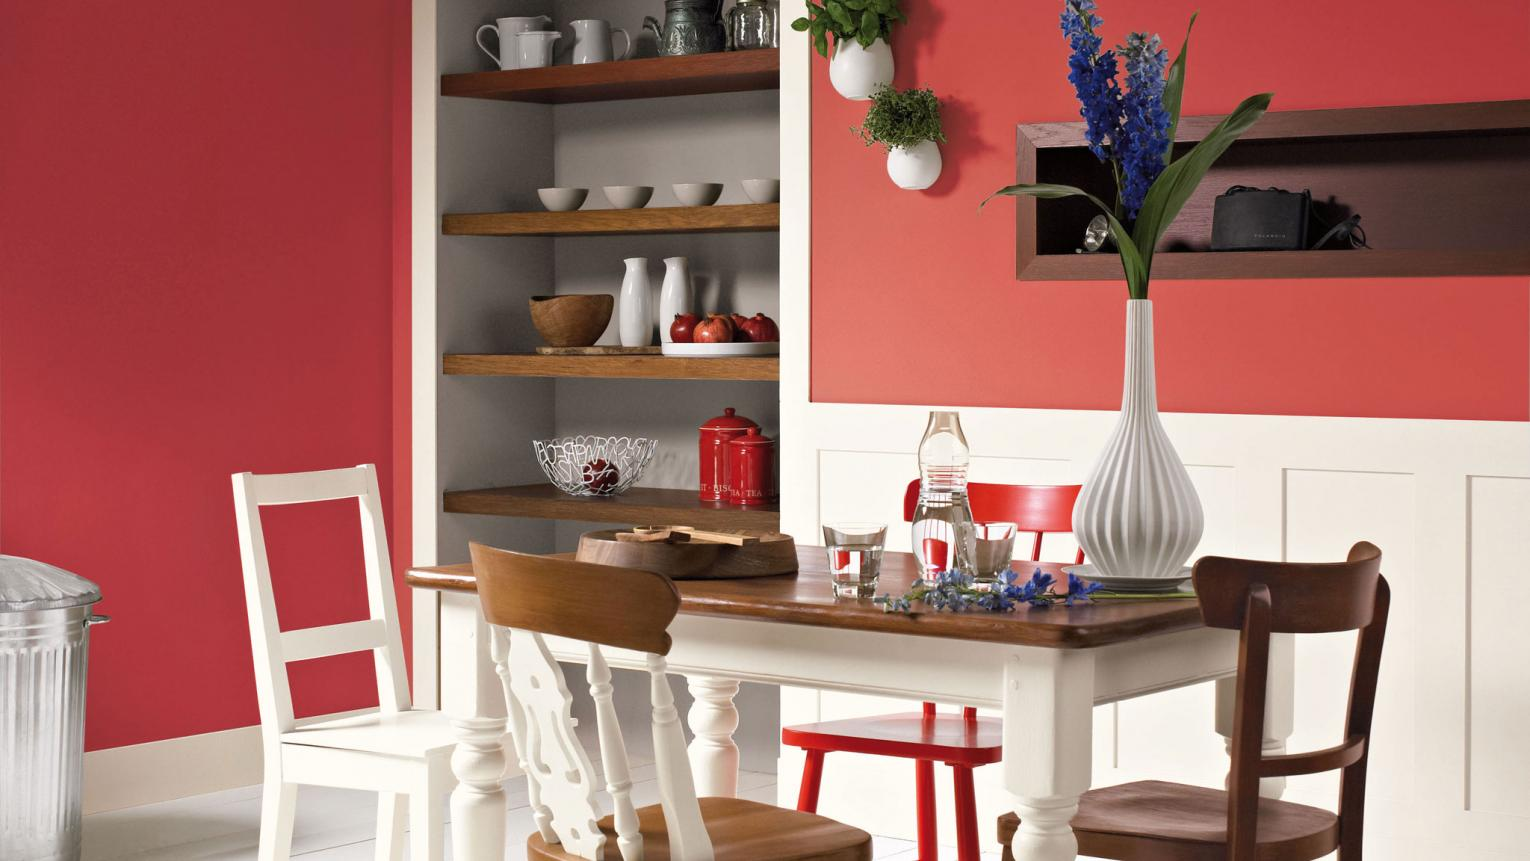 Add drama to your home with a show-stopping red wall.